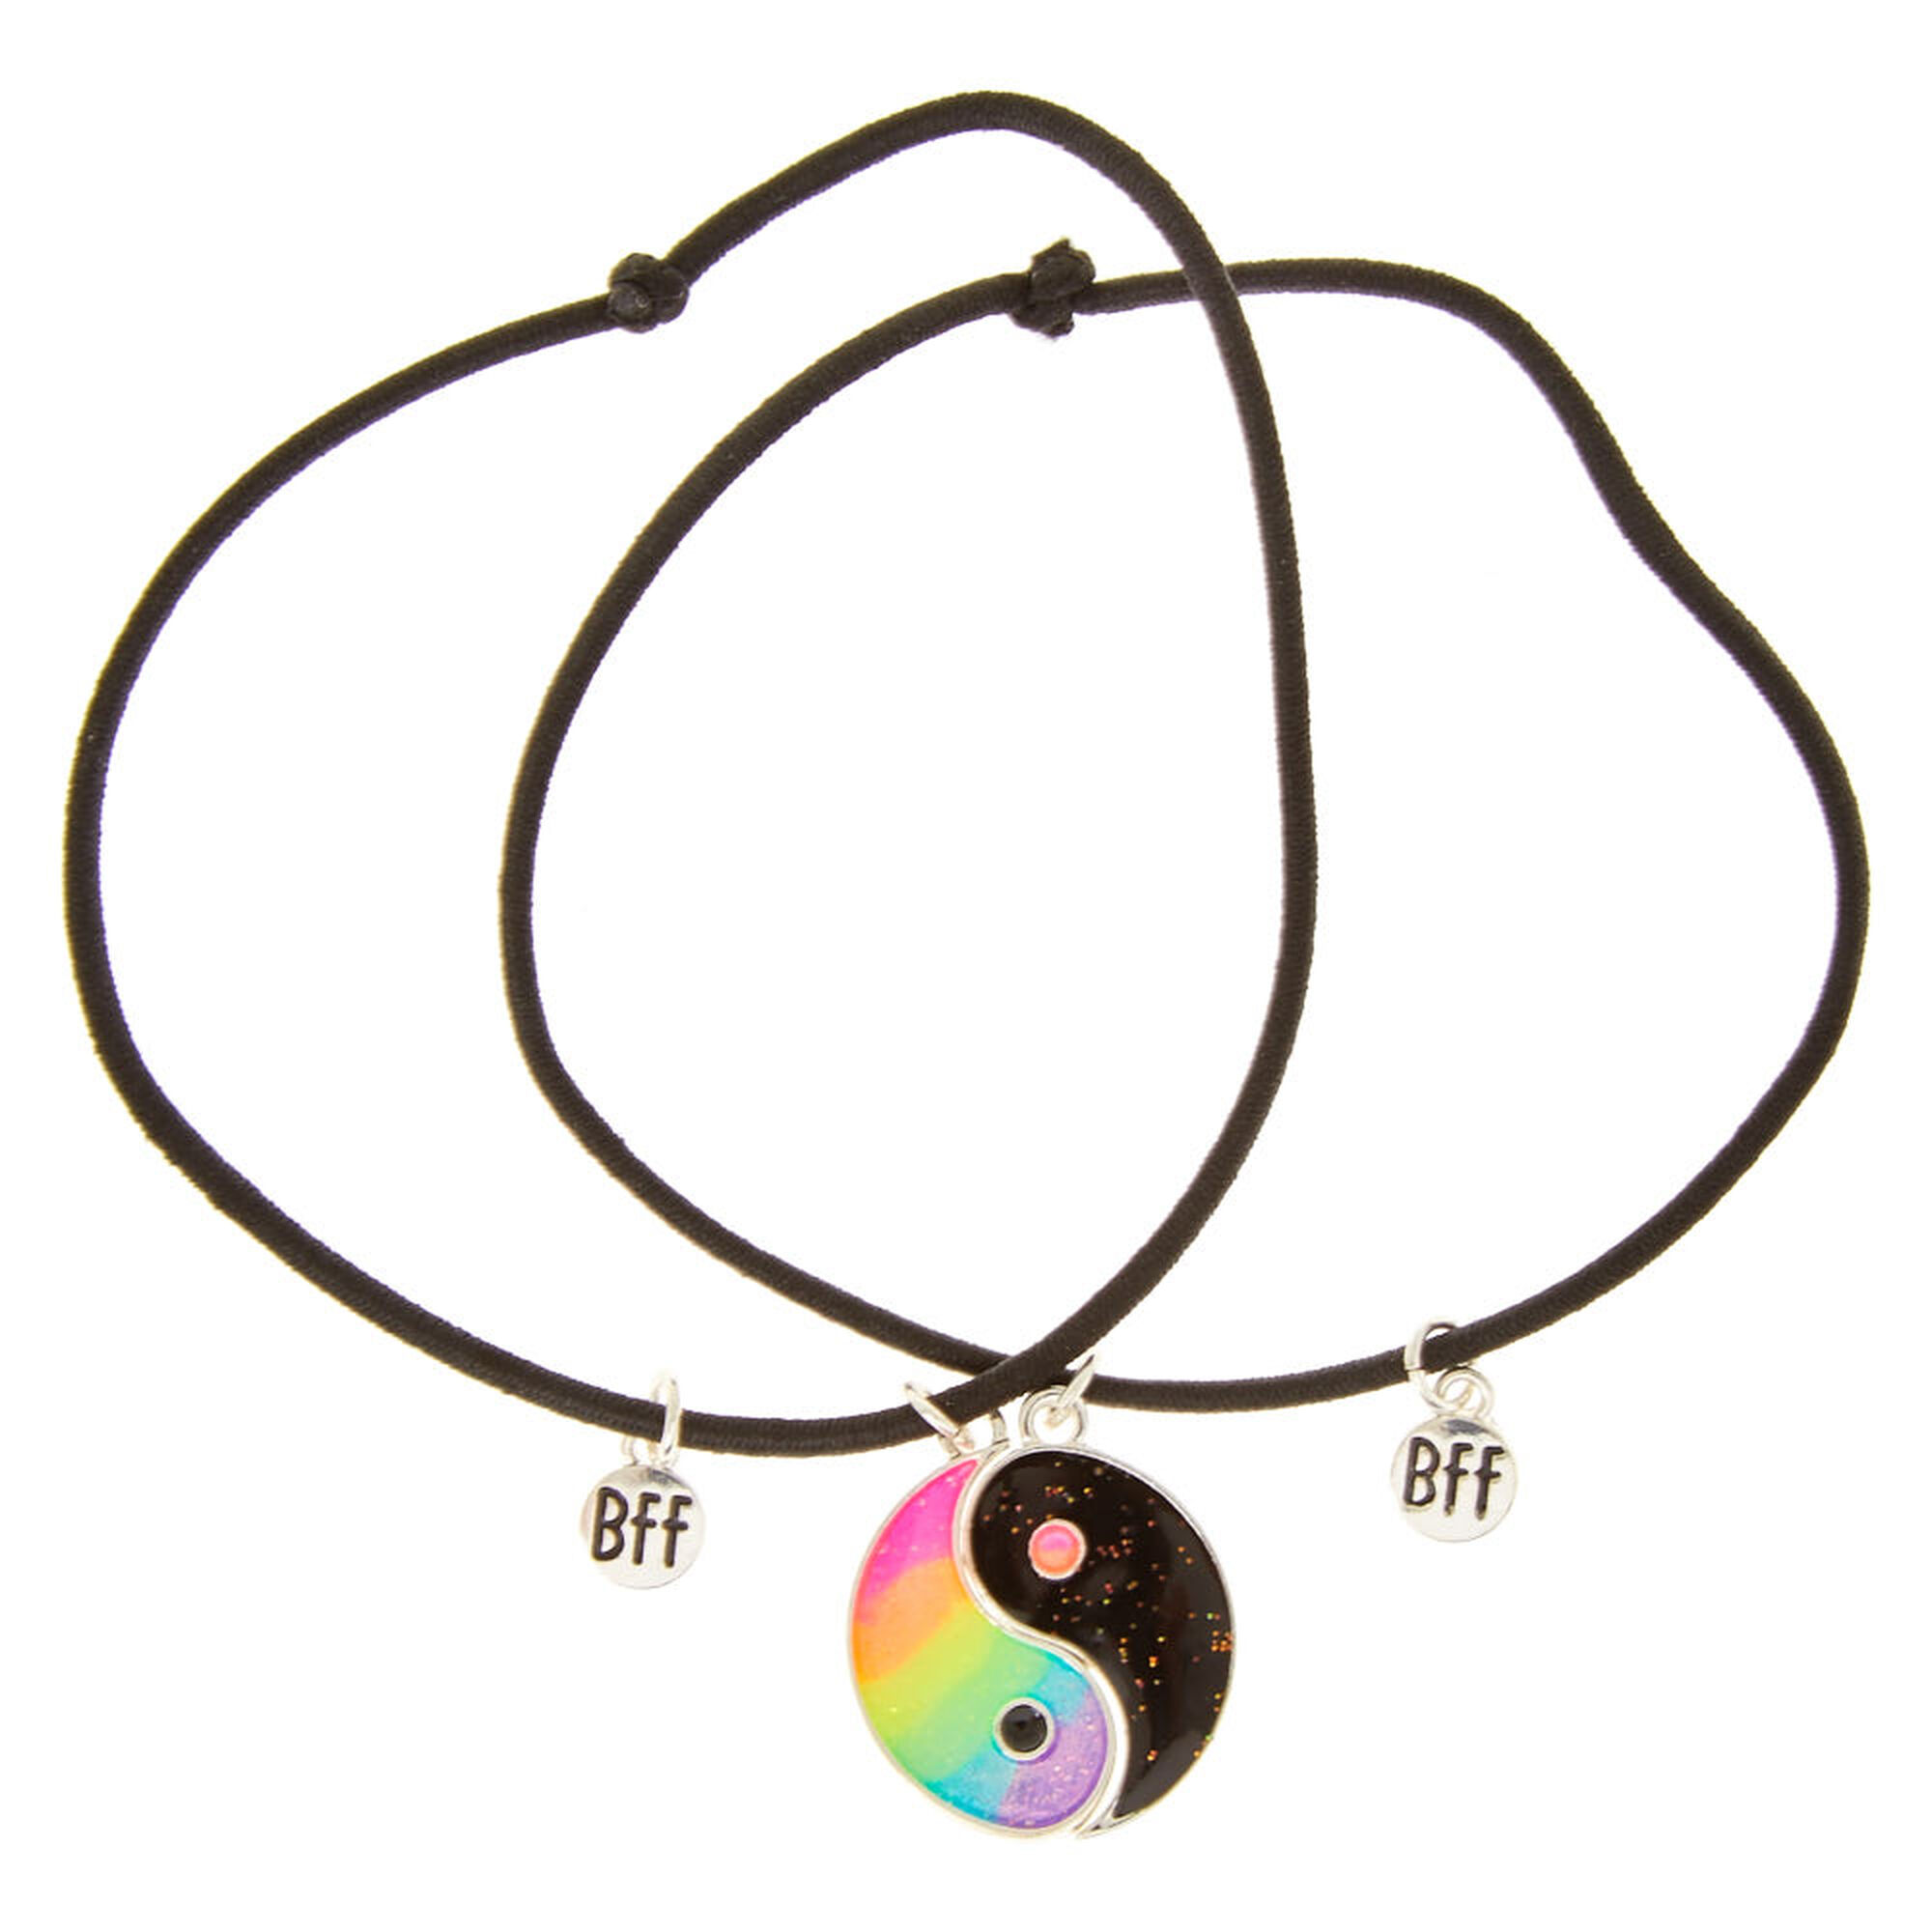 Best Friends Rainbow Yin Yang Bracelets